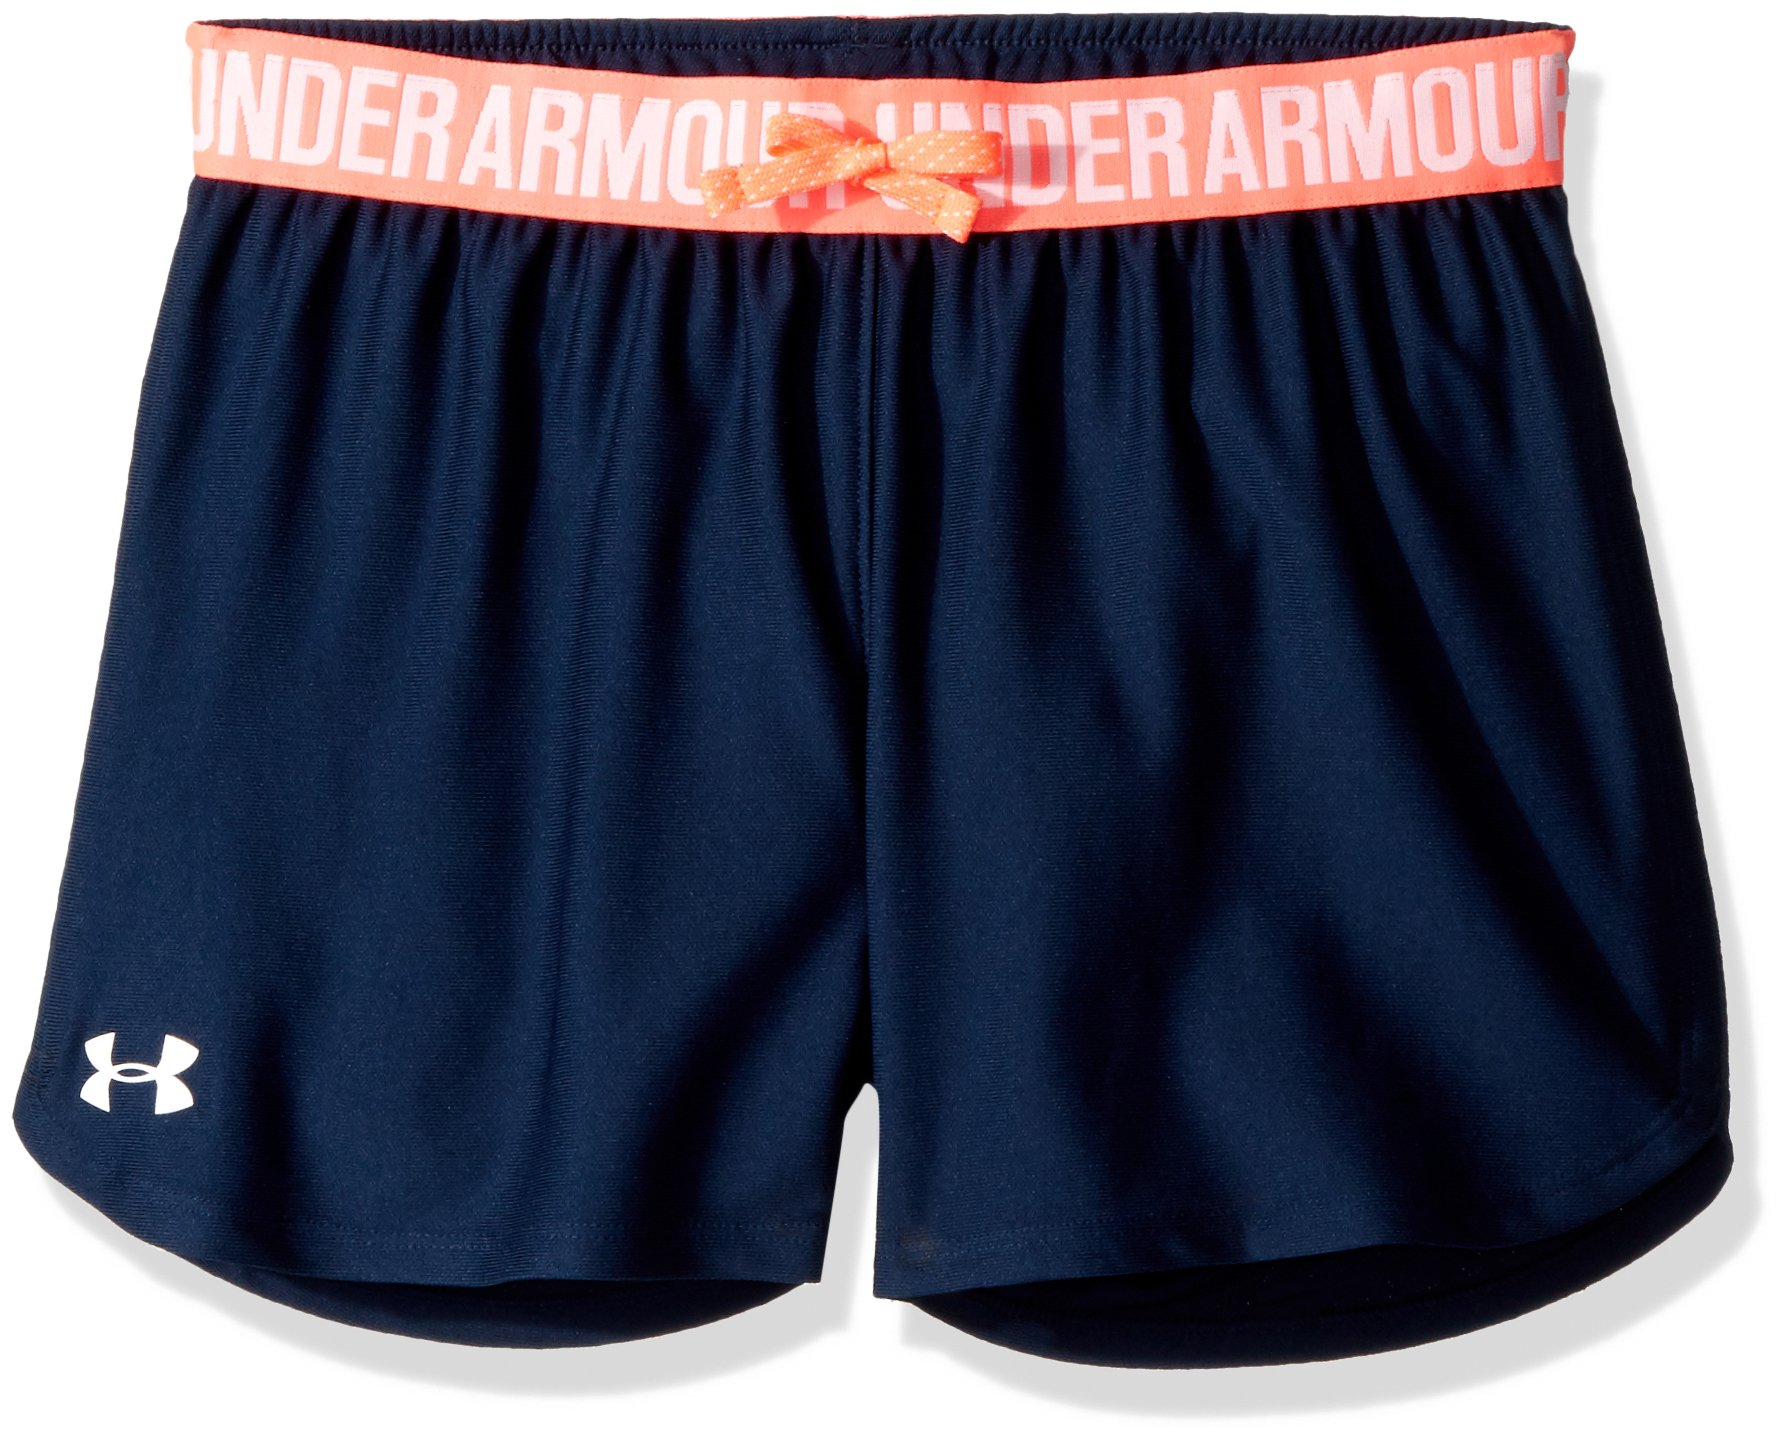 Under Armour Kids Girl's Play Up Shorts (Big Kids) Academy/Brilliance SM (8 Big Kids) by Under Armour